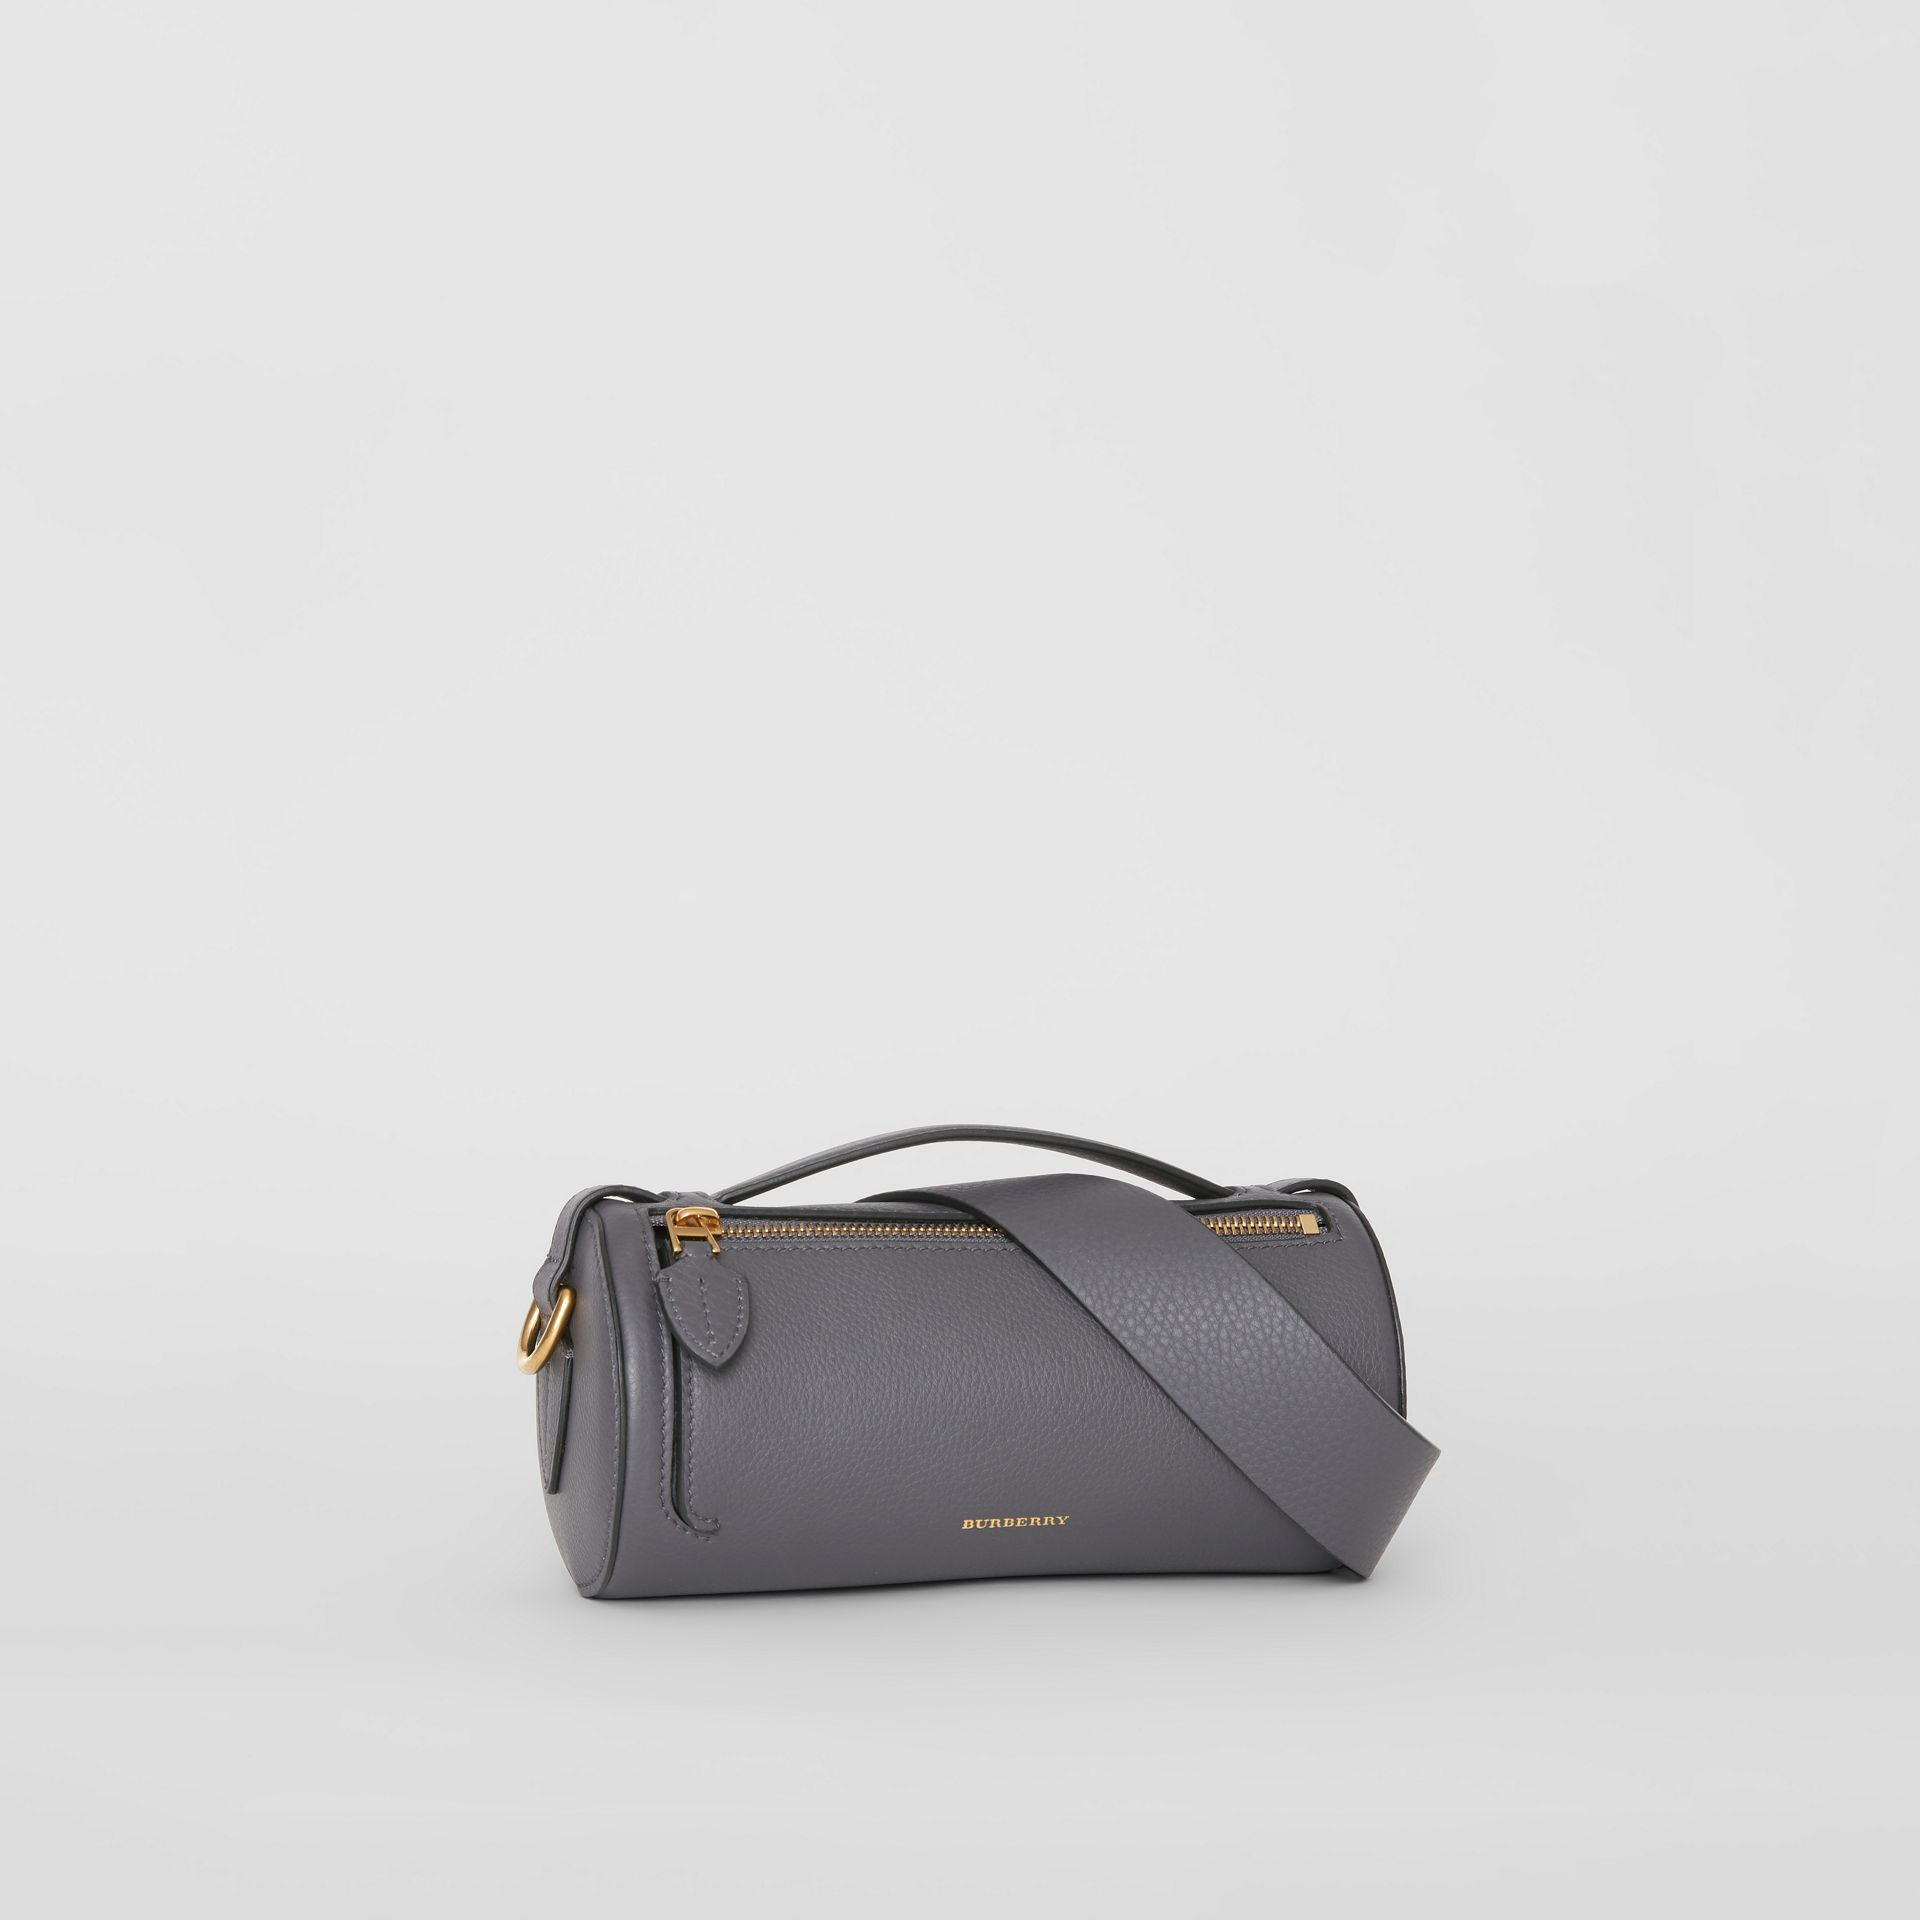 Sac The Barrel en cuir (Gris Anthracite) - Femme | Burberry Canada - photo de la galerie 6